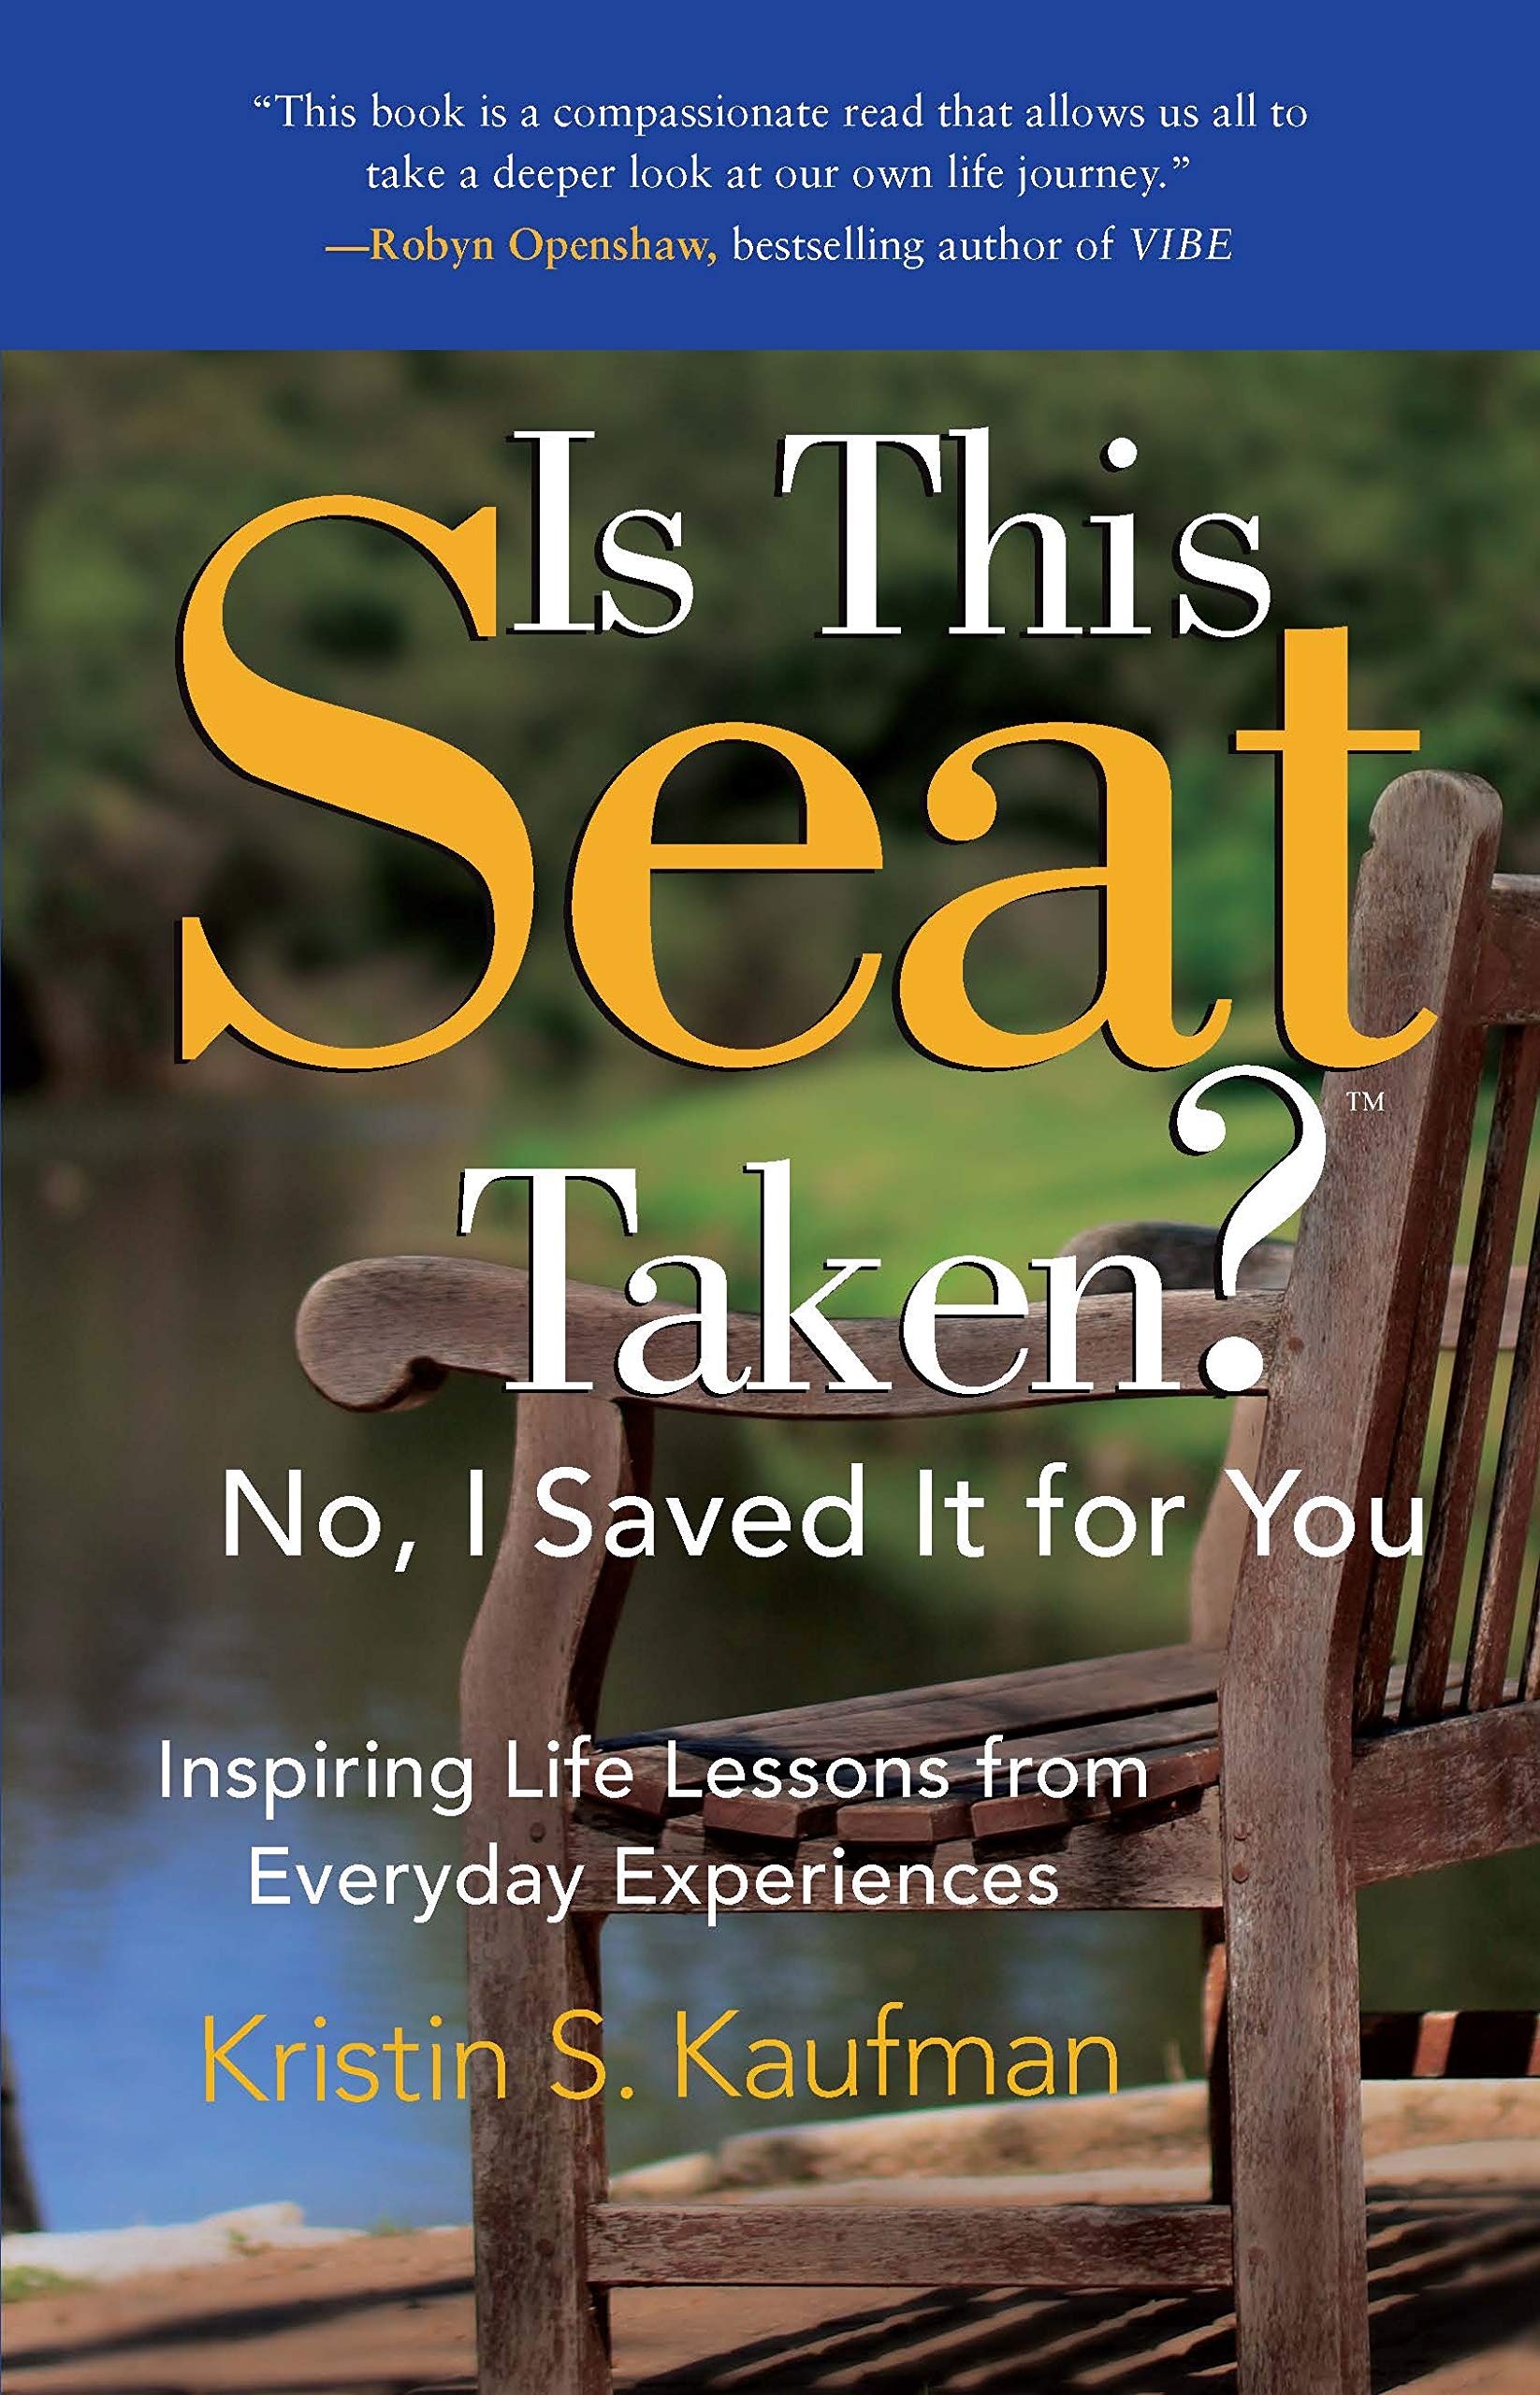 Is This Seat Taken? No, I Saved it for You: Inspiring Life Lessons from Everyday Experiences